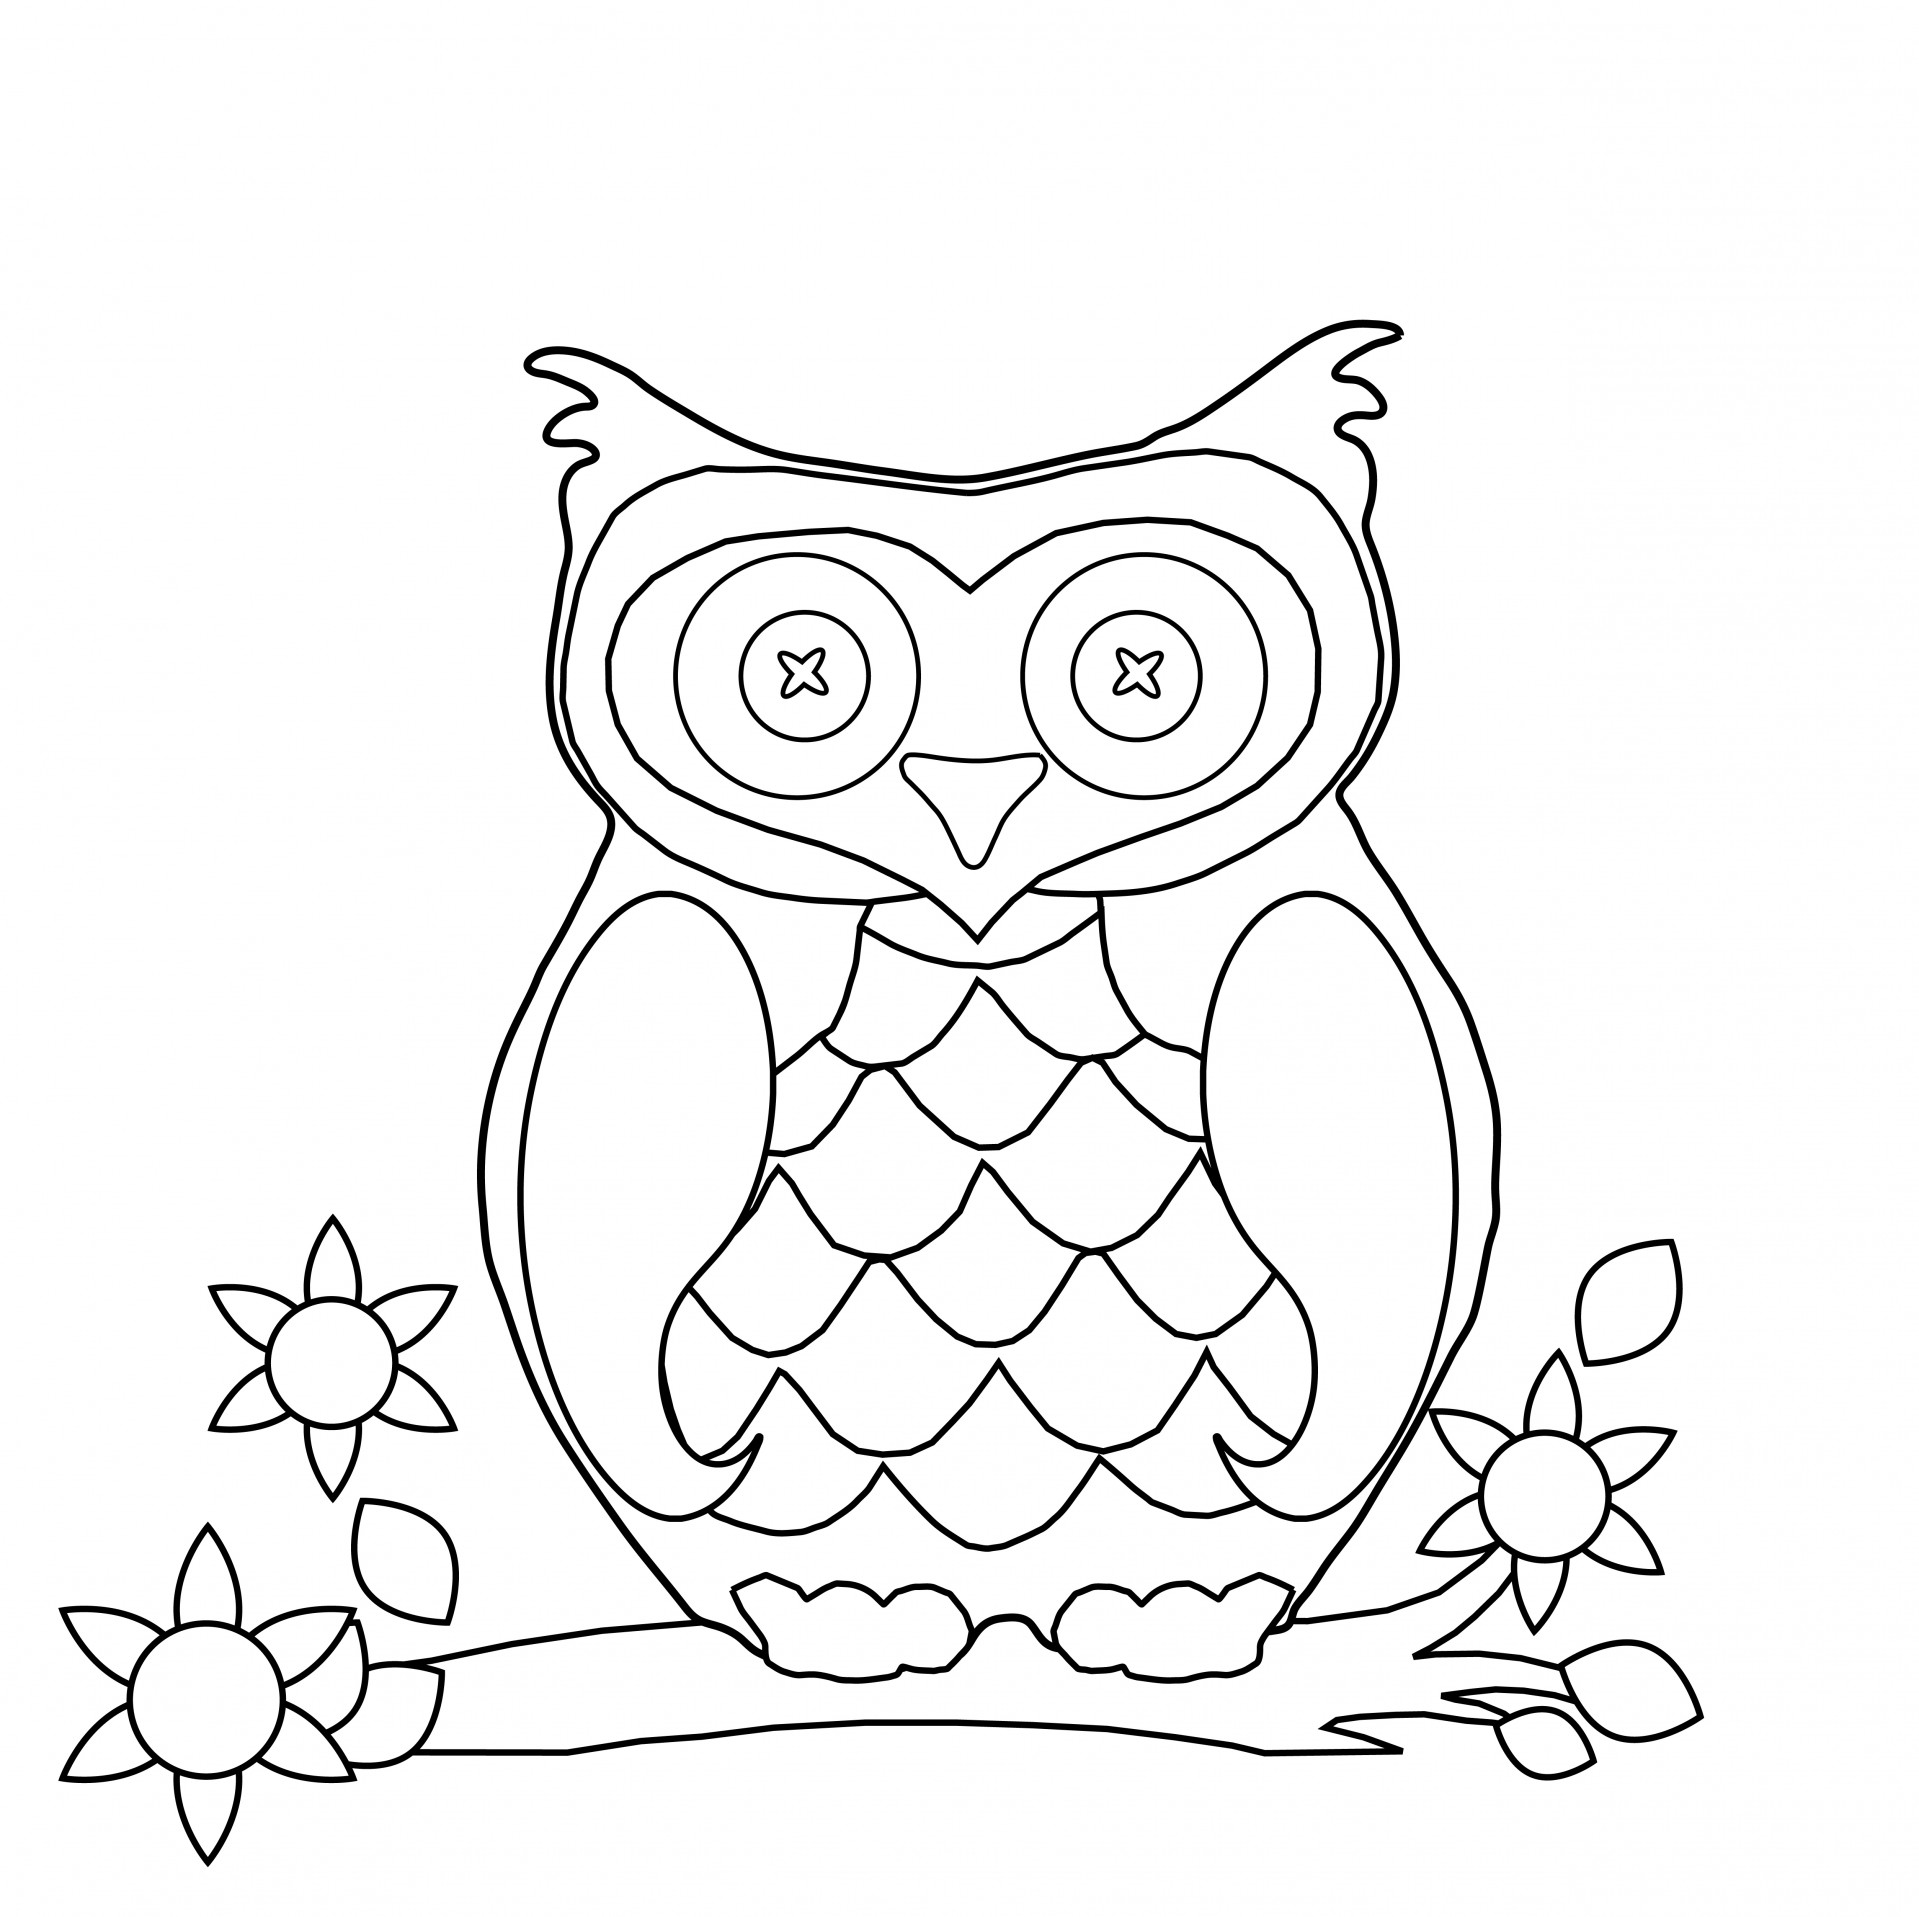 pictures for coloring zebra coloring pages free printable kids coloring pages for pictures coloring